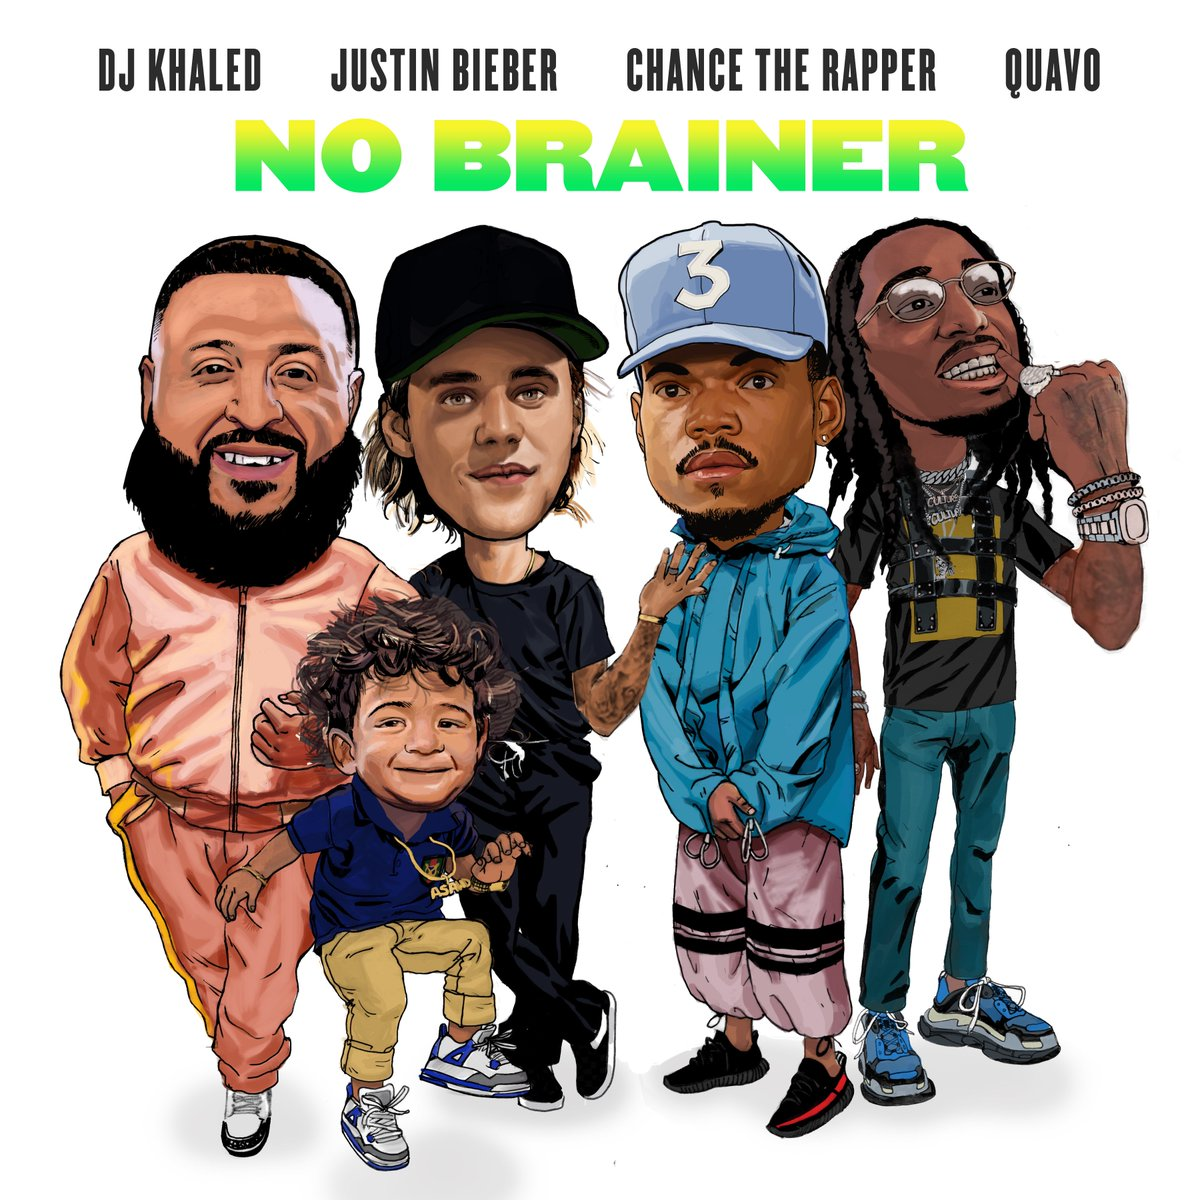 NO BRAINER out now https://t.co/7b7MGzjpYu